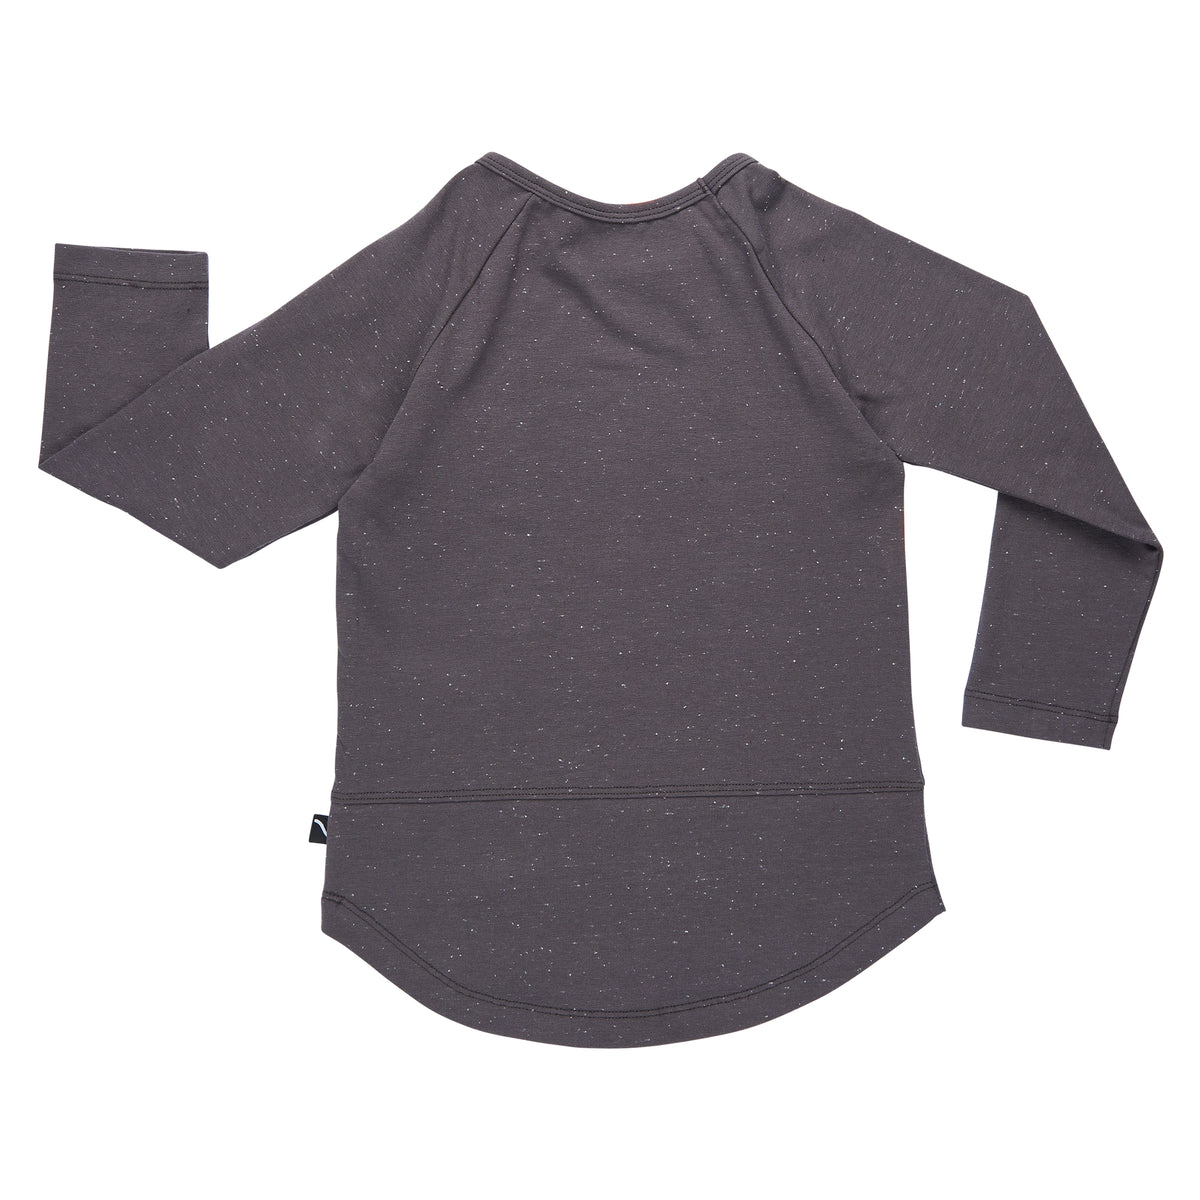 Basics Longsleeve Top